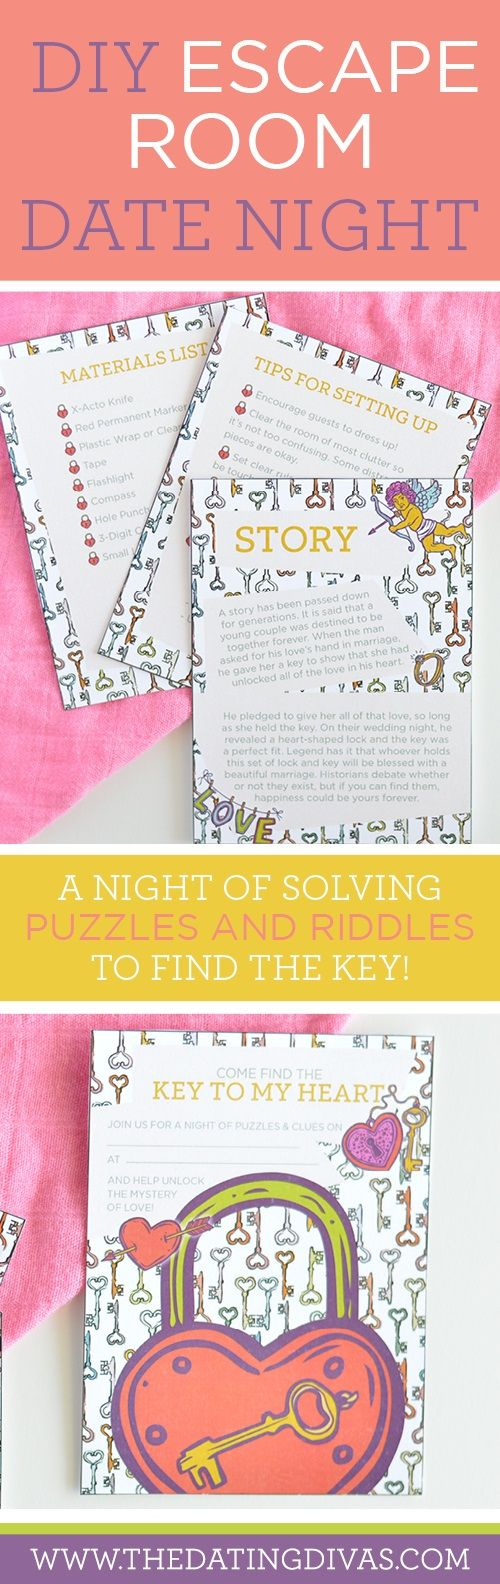 DIY Escape Room date night idea - it's a fun, inexpensive alternative!